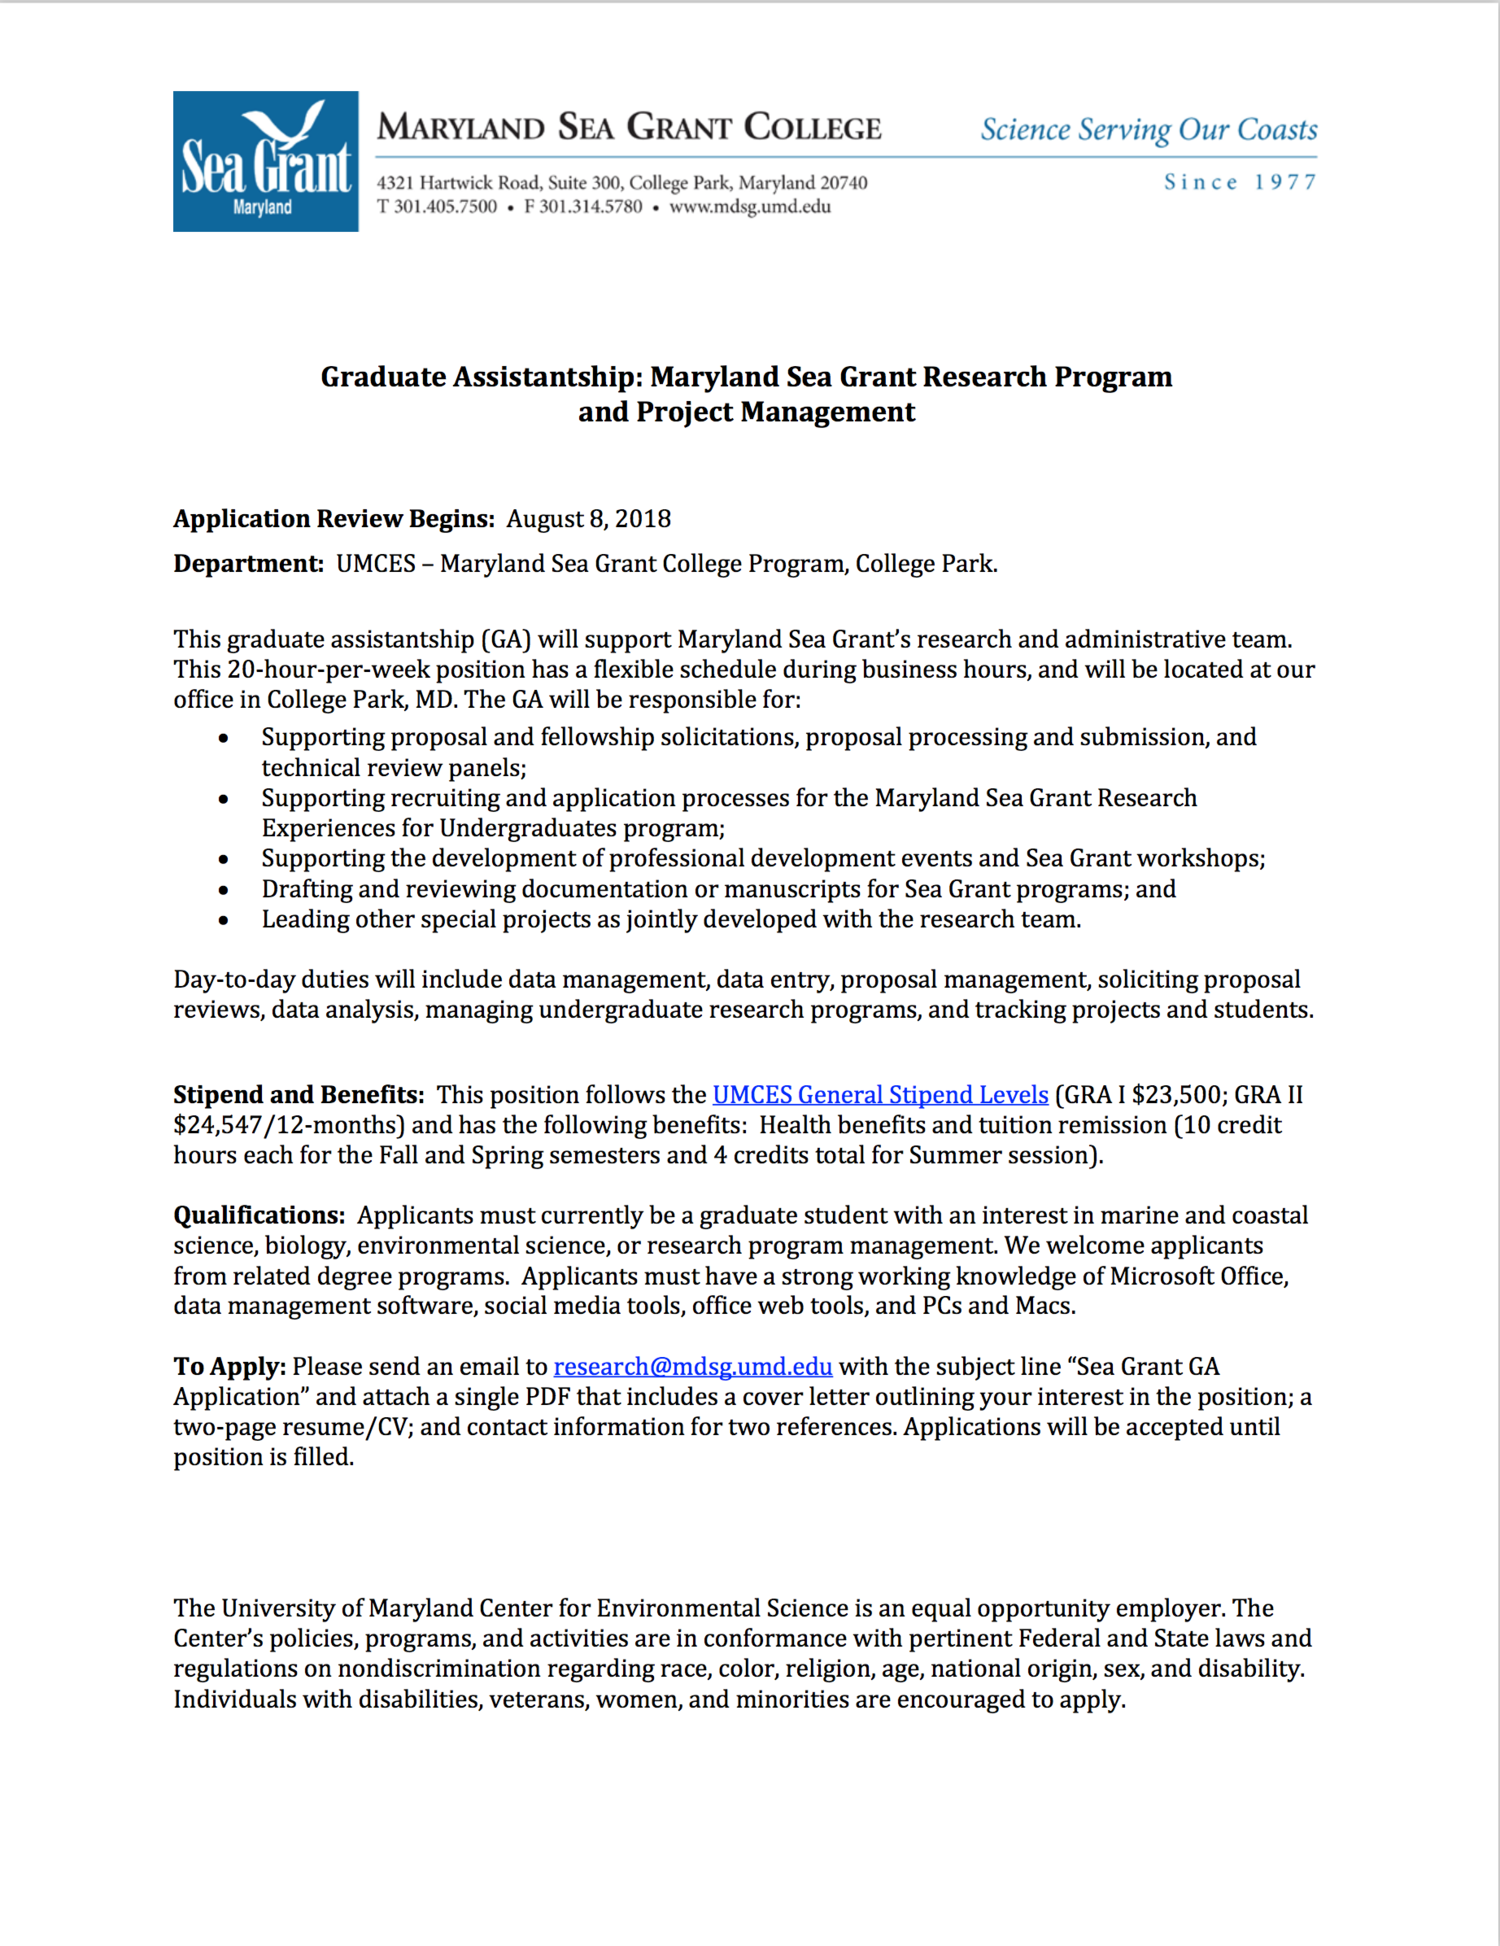 Graduate Assistantship Maryland Sea Grant Research Program And